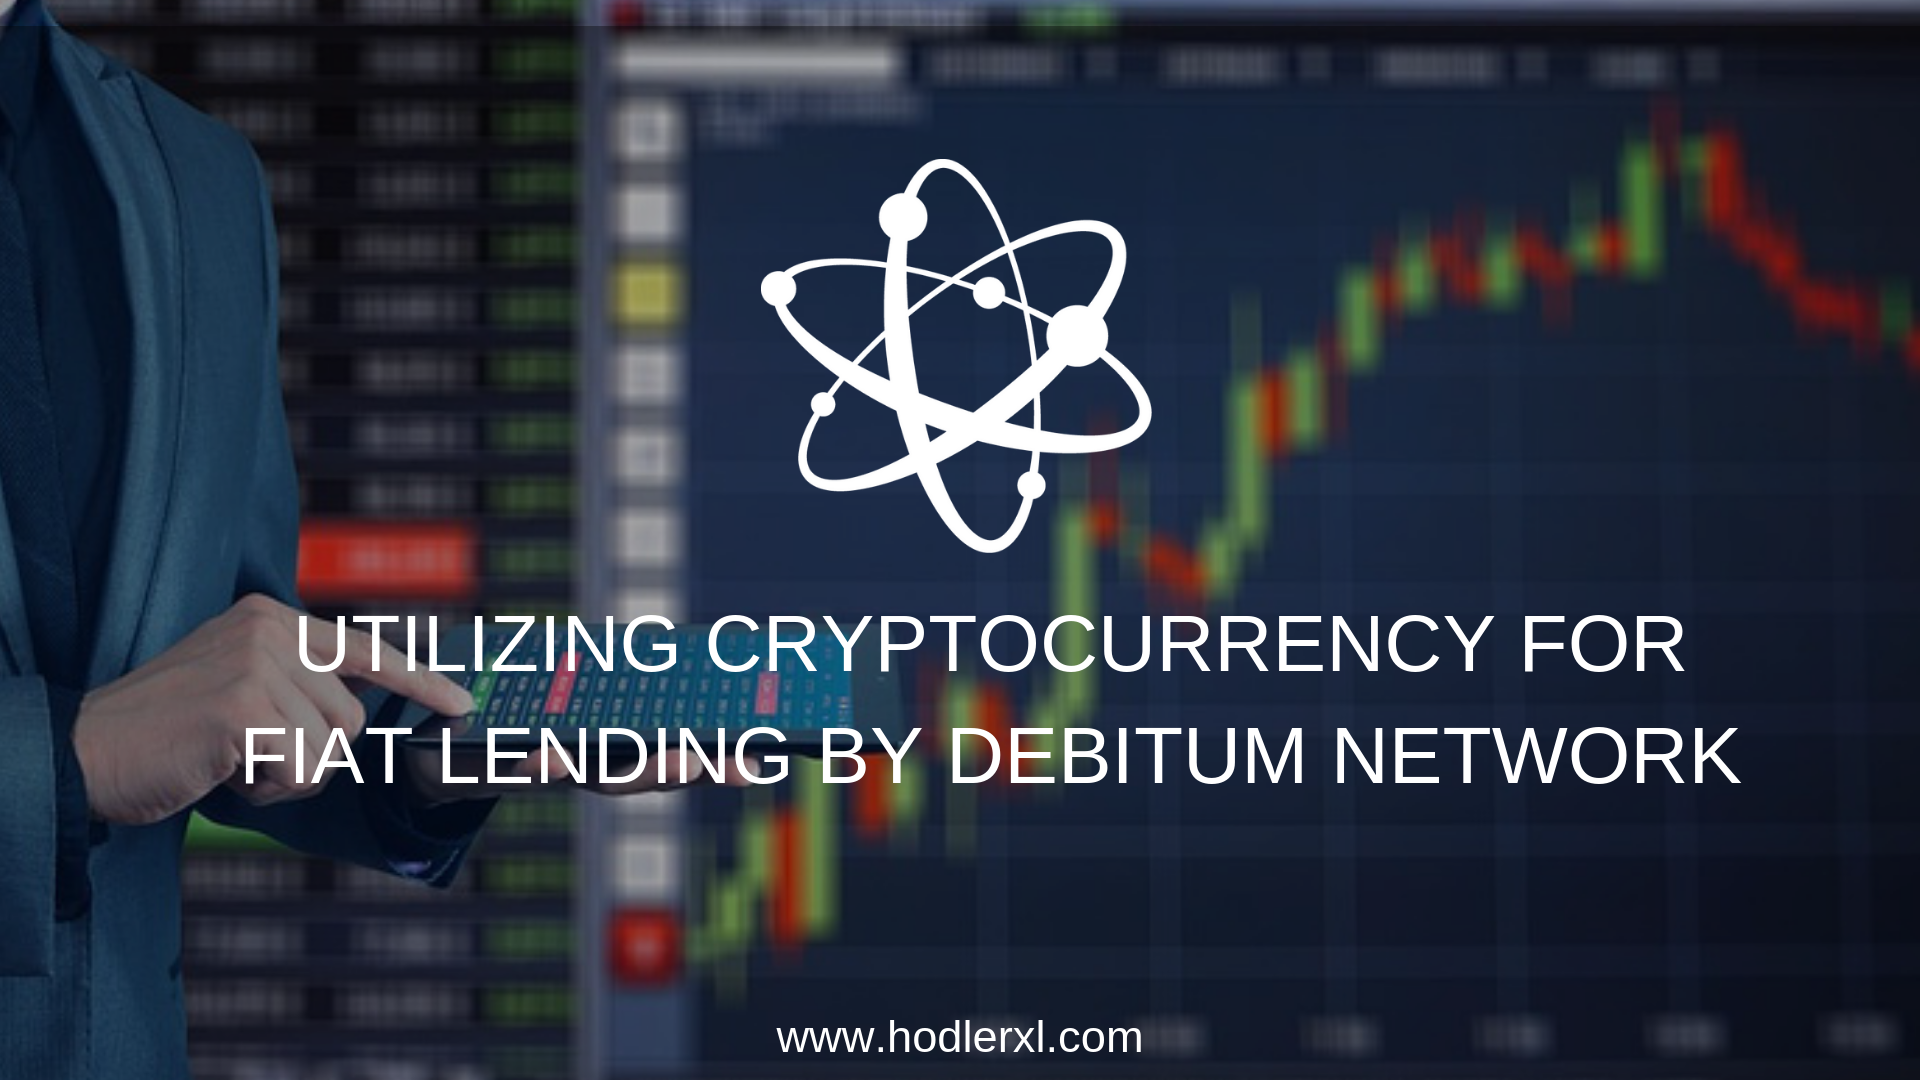 Utilizing Cryptocurrency For Fiat Lending By Debitum Network